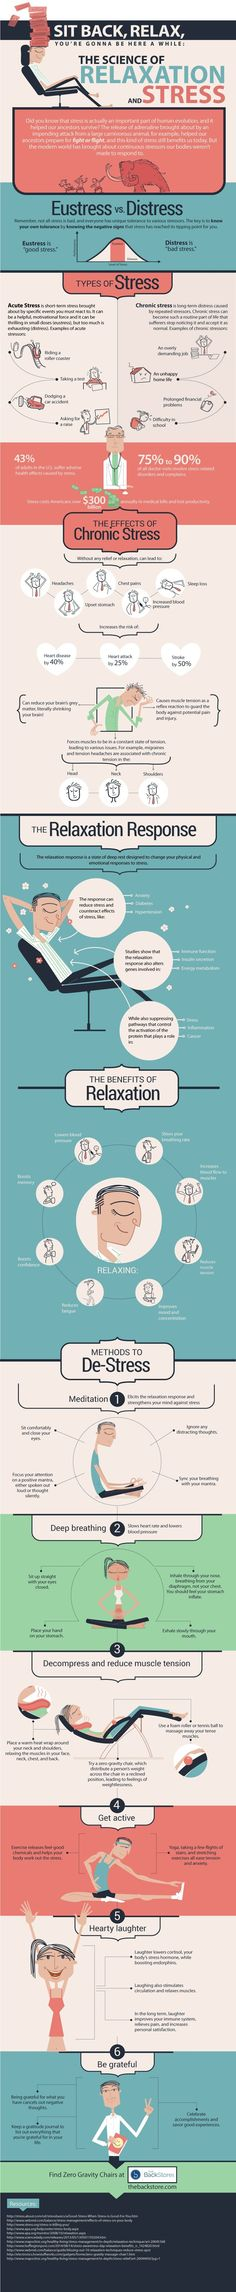 The Science of Relaxation and Stress #StressManagement ----------------------------- greenwoodcounselingcenter.com